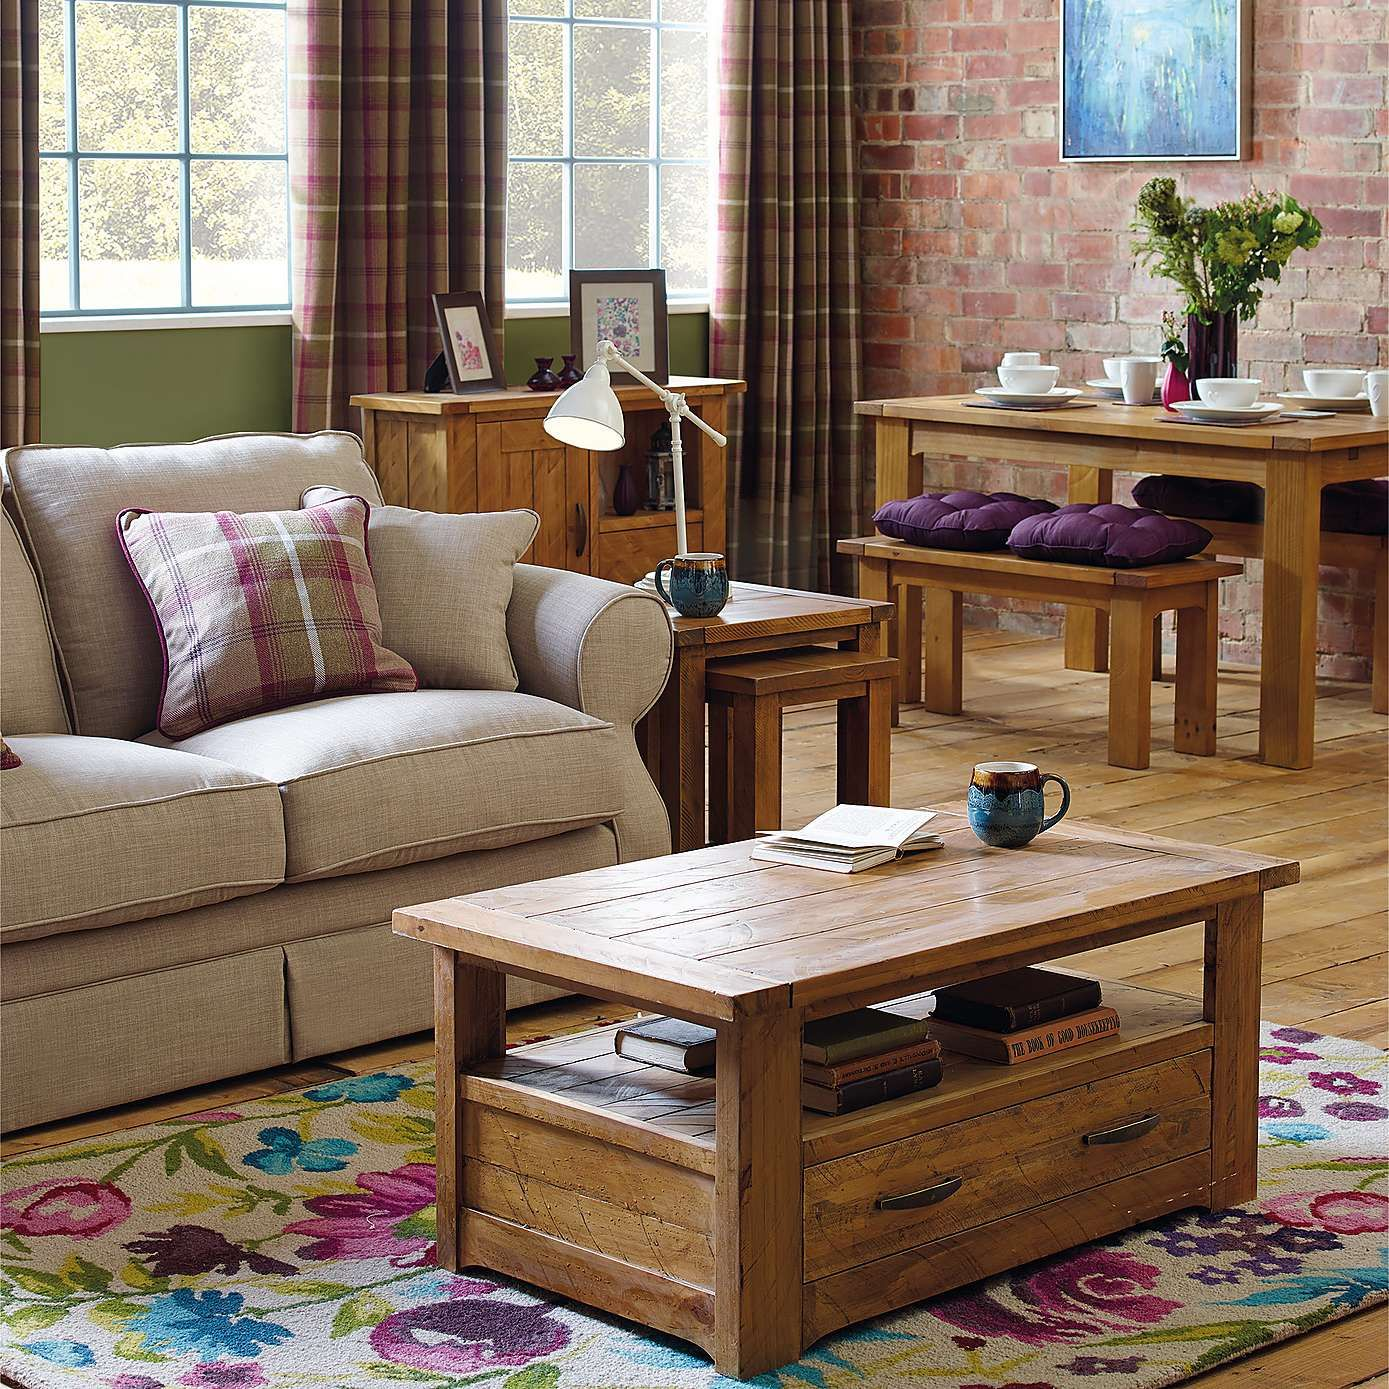 Pine Living Room Furniture Loxley Pine Living Furniture Collection Dunelm Loxley